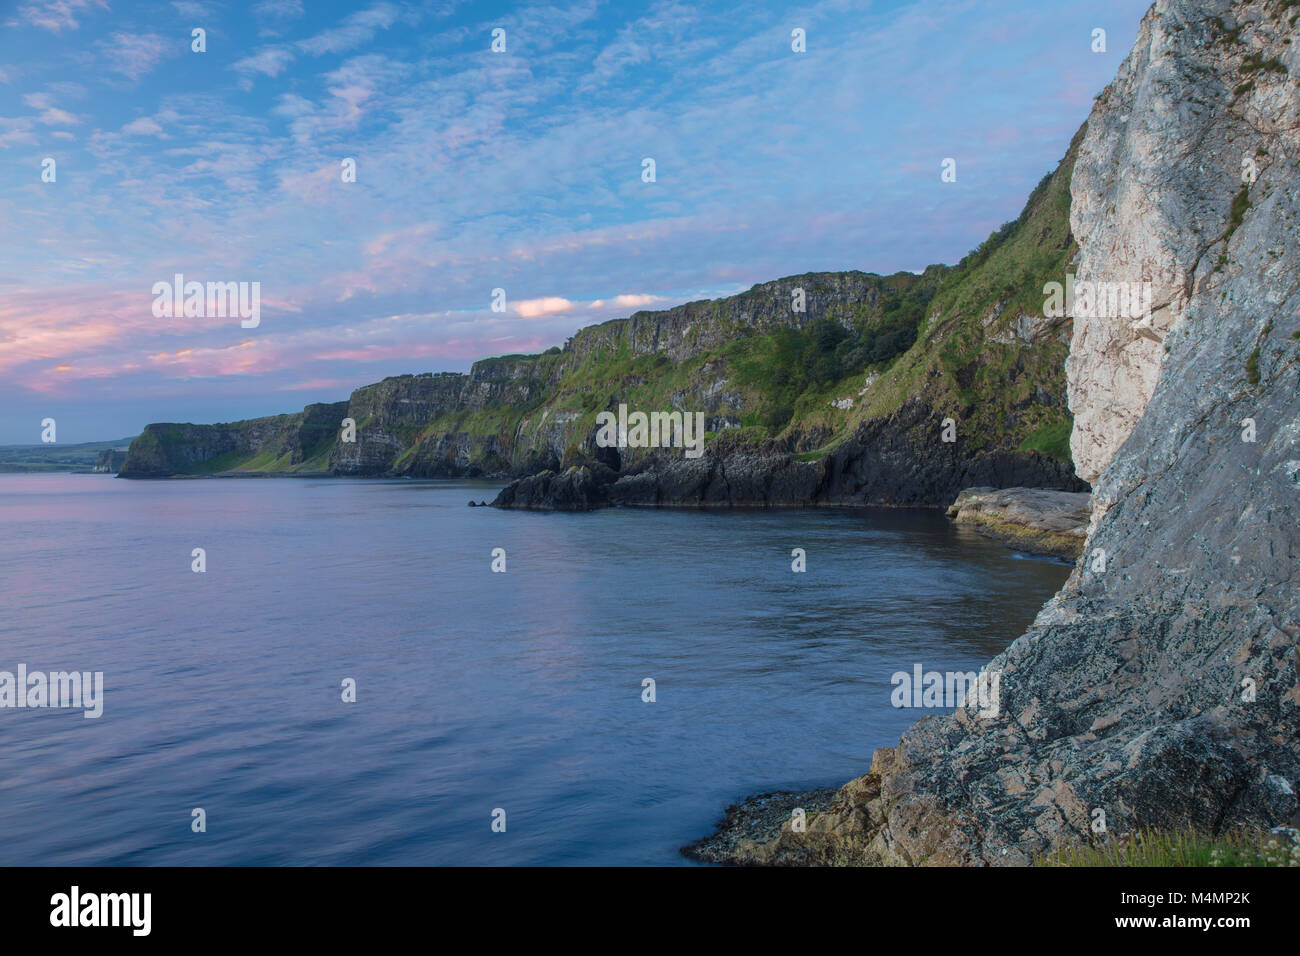 Sea cliffs near Kinbane castle, Portnakillew, Ballycastle, Country Antrim, Northern Ireland. - Stock Image